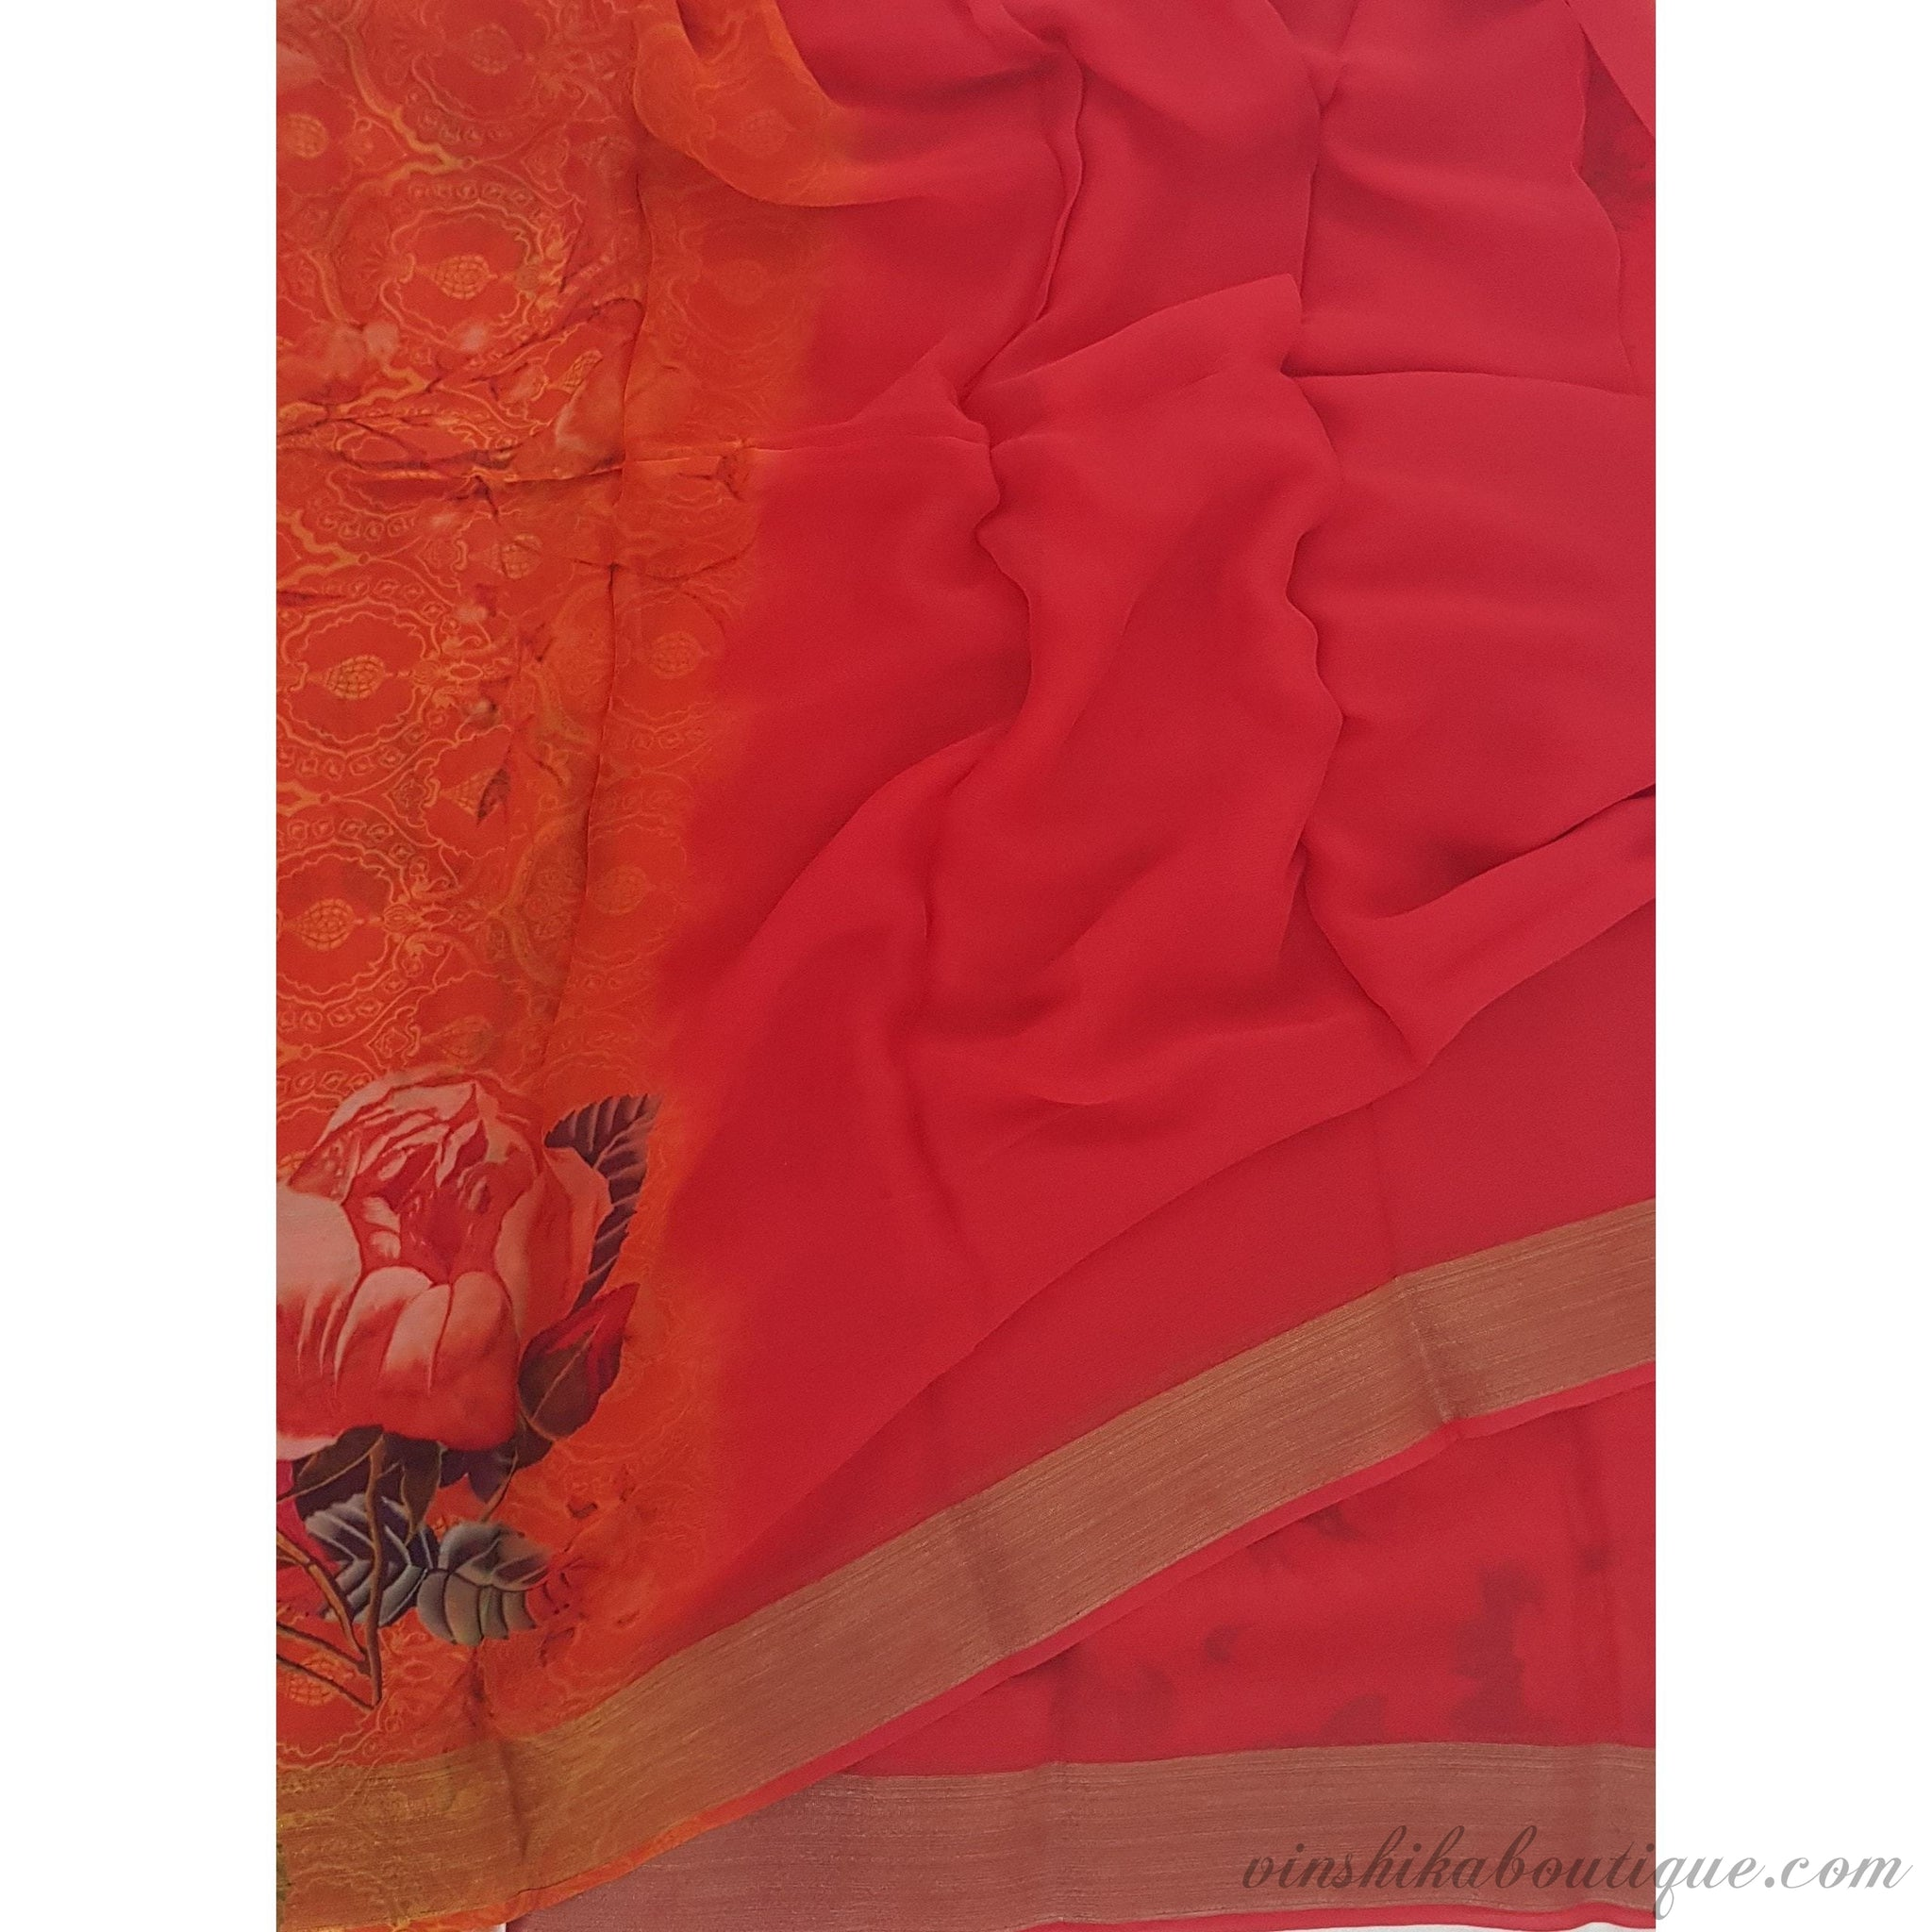 Tomato Red and Orange Pure Chiffon Saree with Golden Zari Border